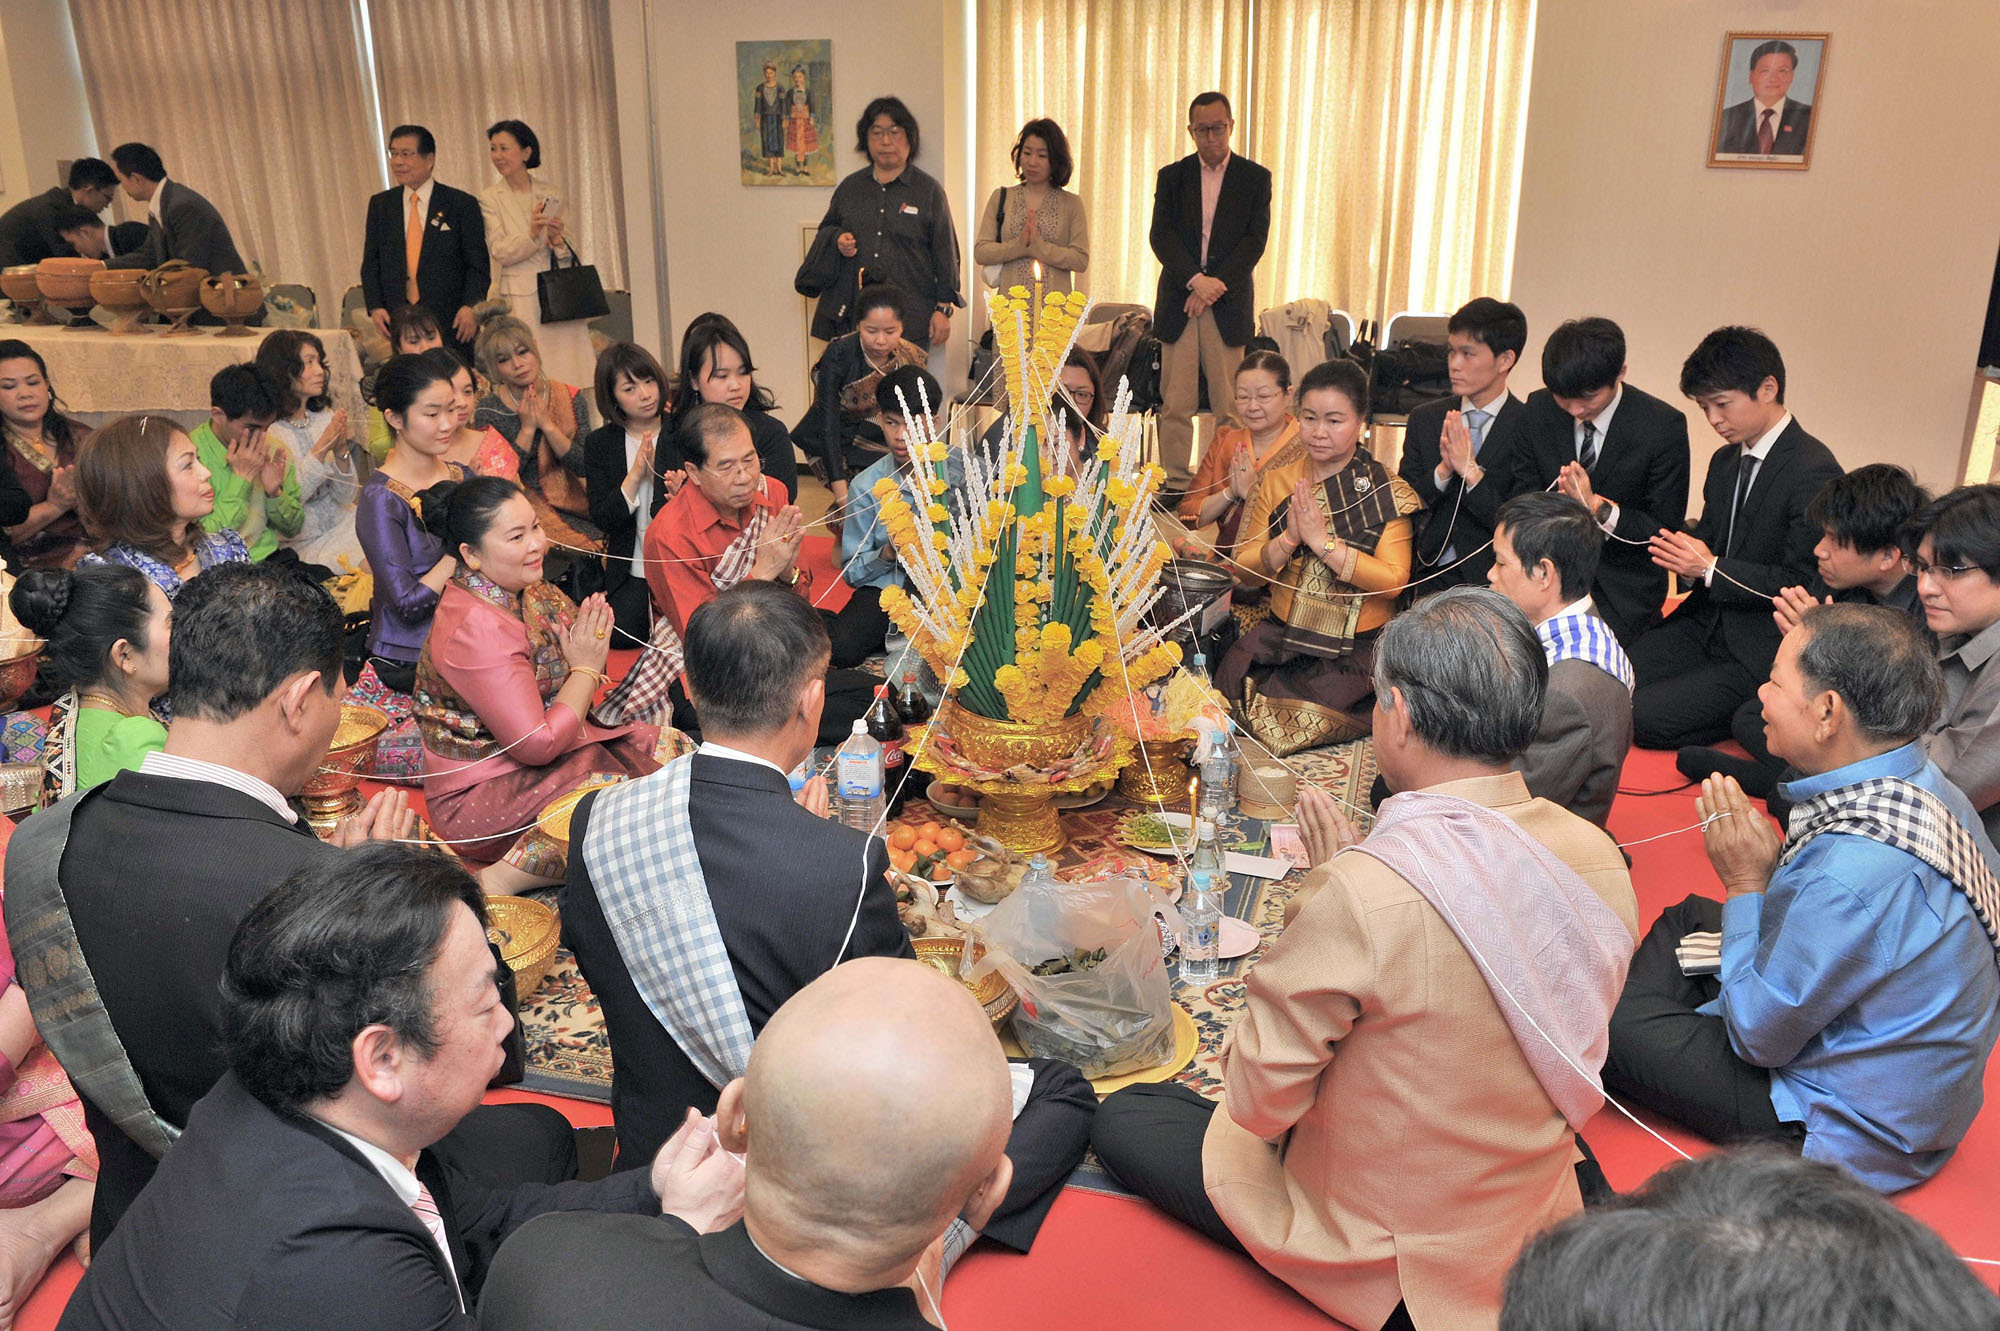 Japanese and Lao attendees participate in the Basy Ceremony at the embasy in Tokyo on April 16.    YOSHIAKI MIURA